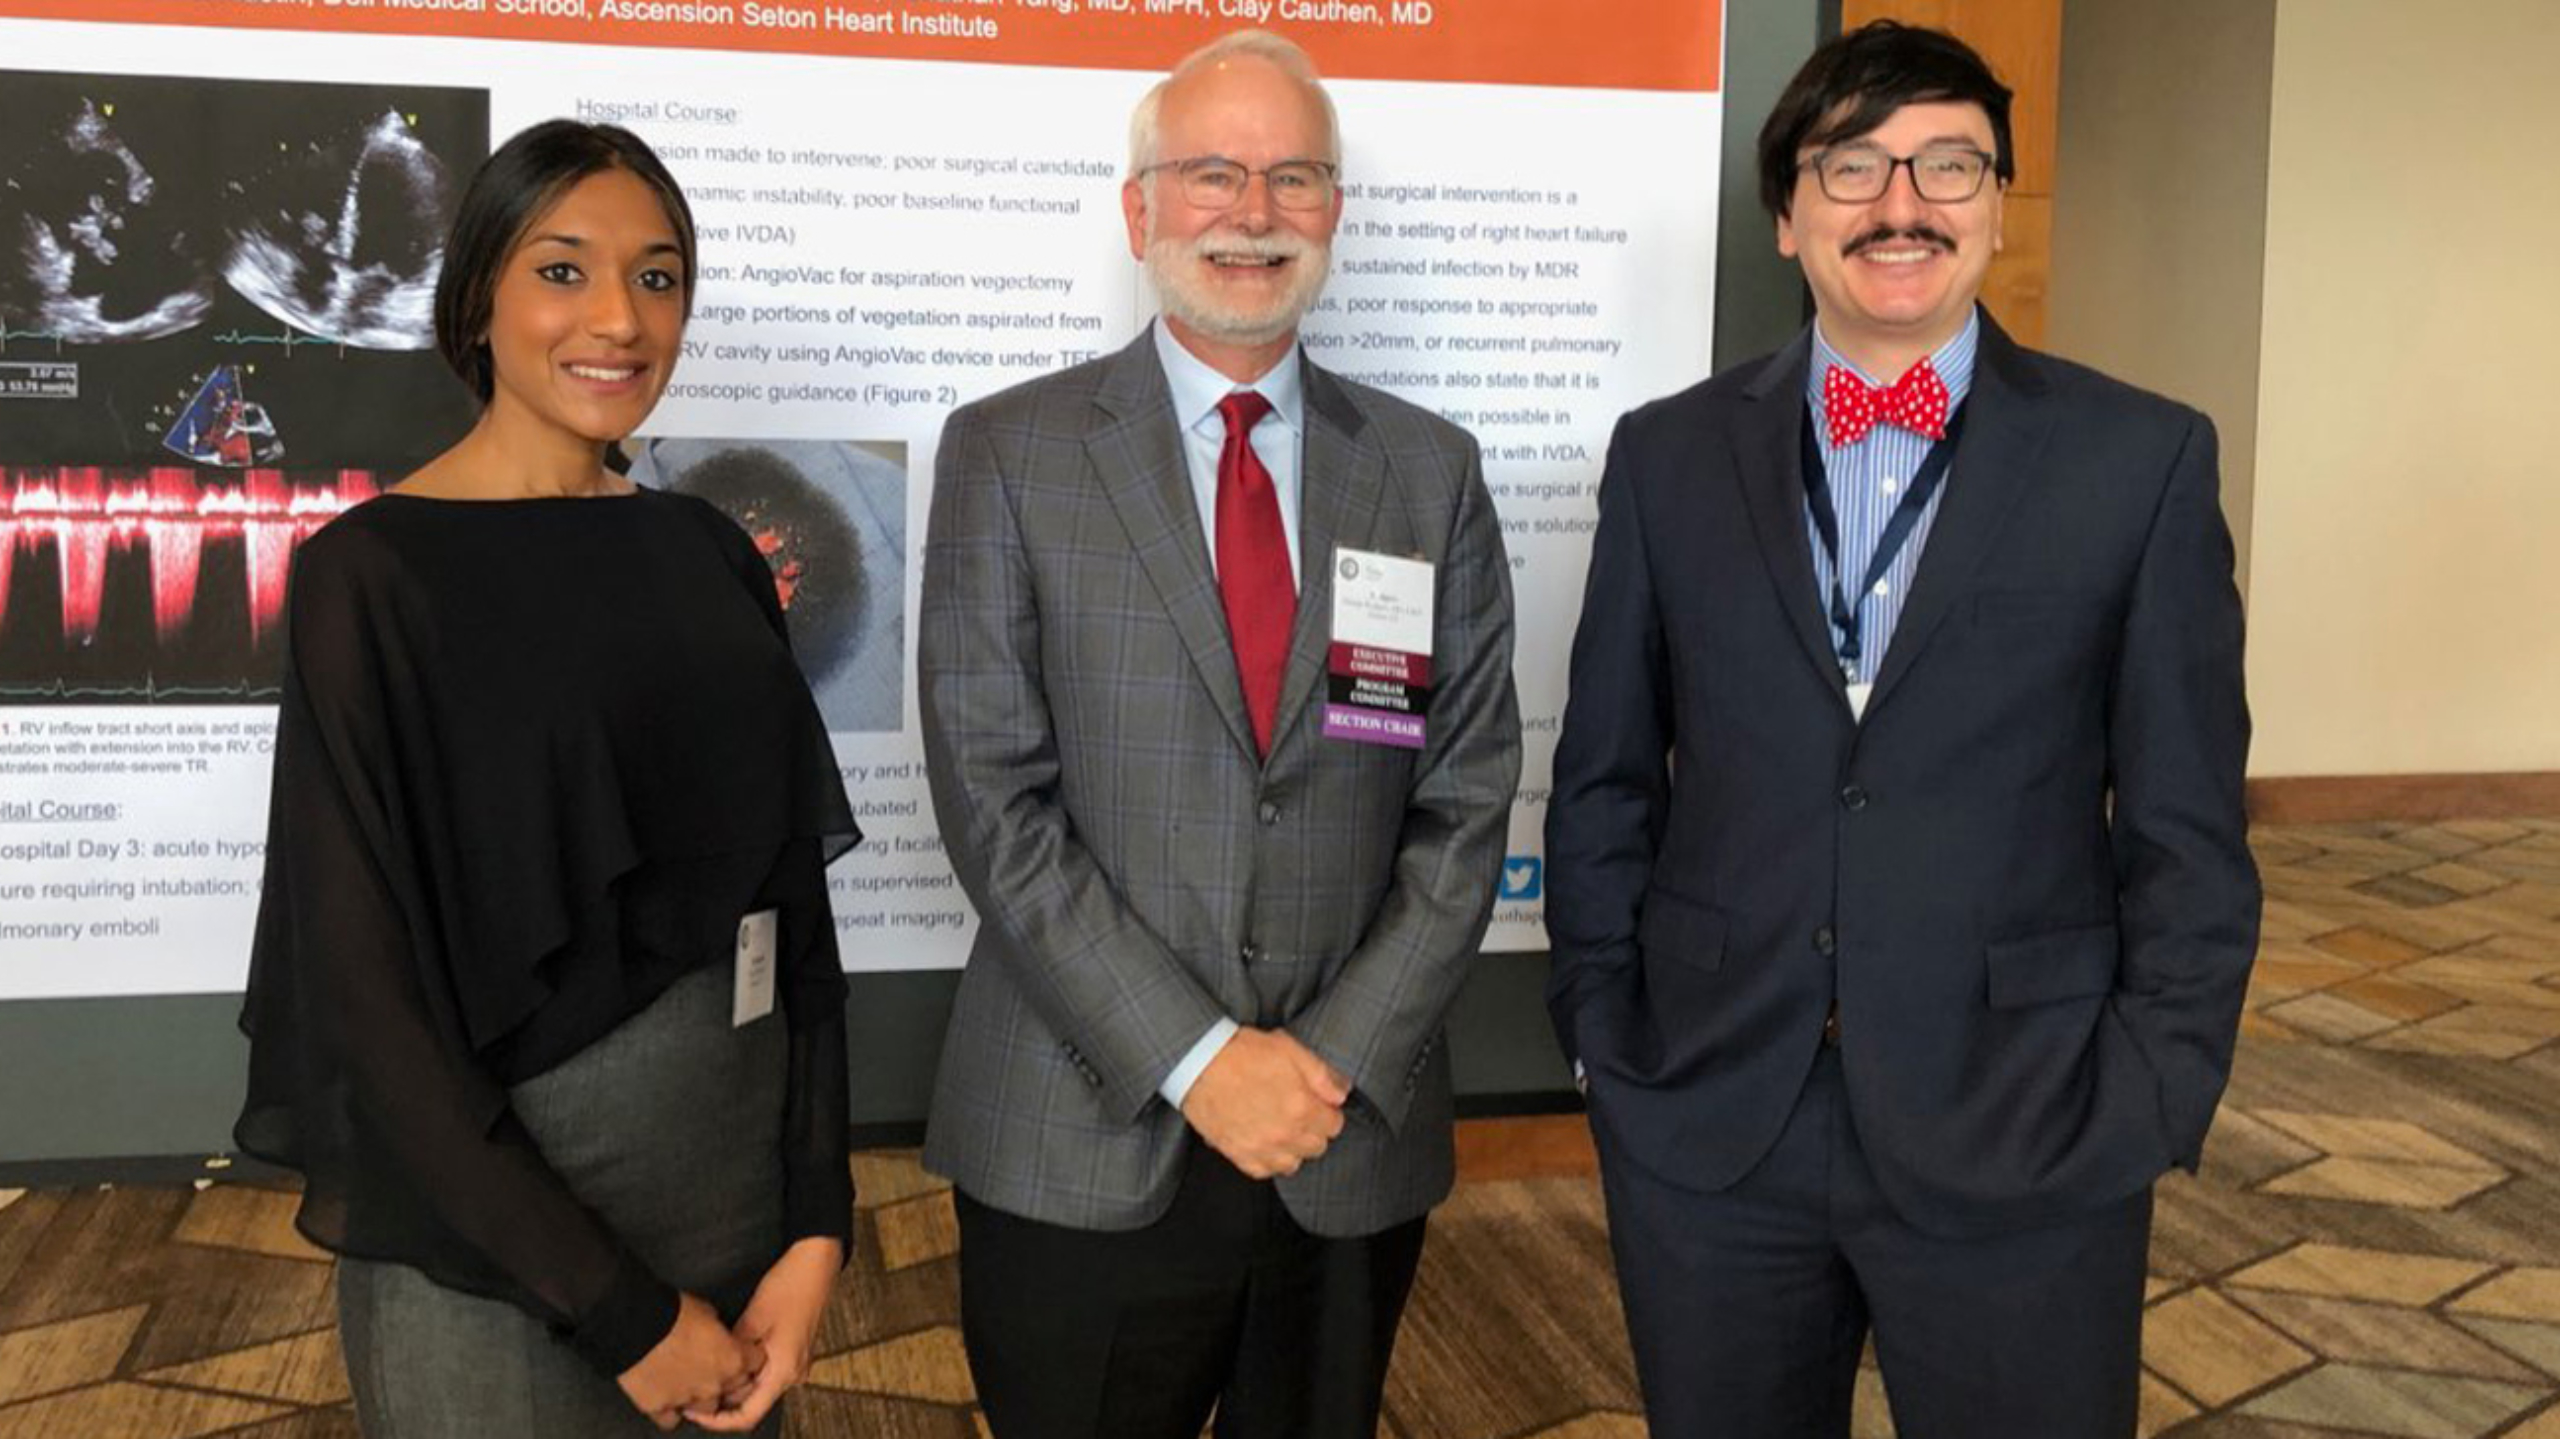 Two Cardiovascular Disease fellows and an adviser pose in front of a research poster at a conference.